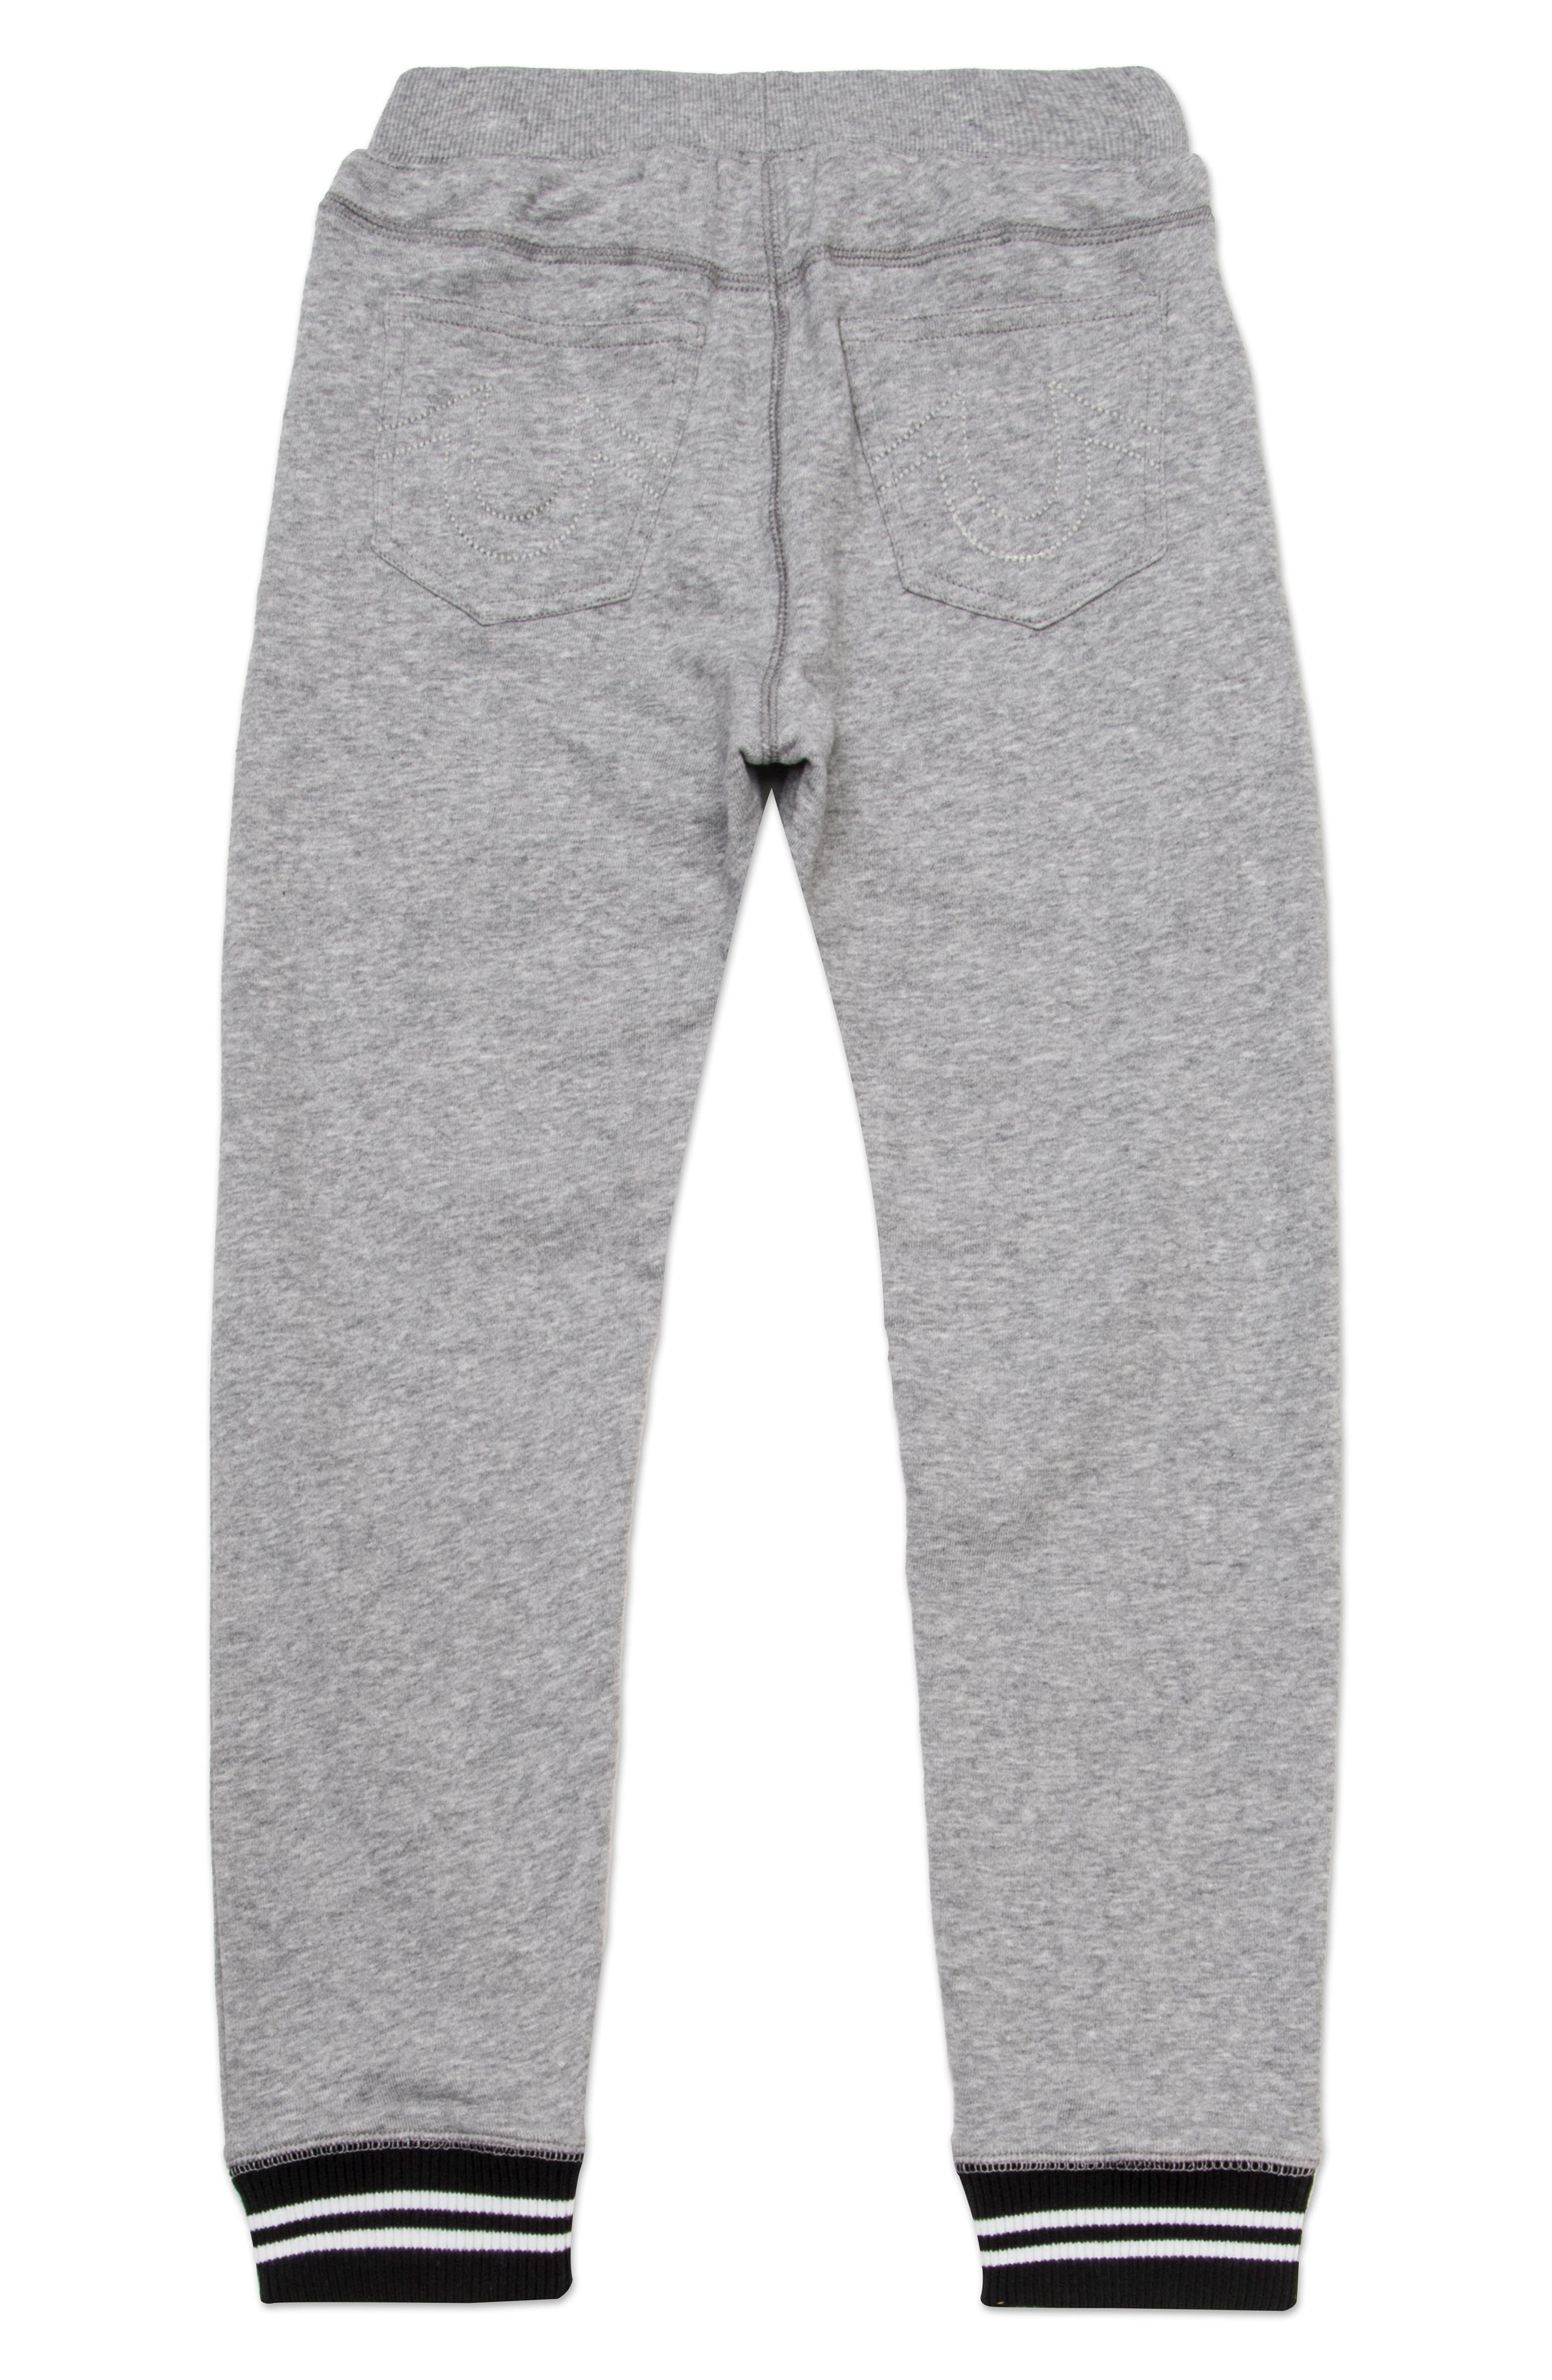 Tipped Sweatpants,                             Alternate thumbnail 2, color,                             Heather Grey